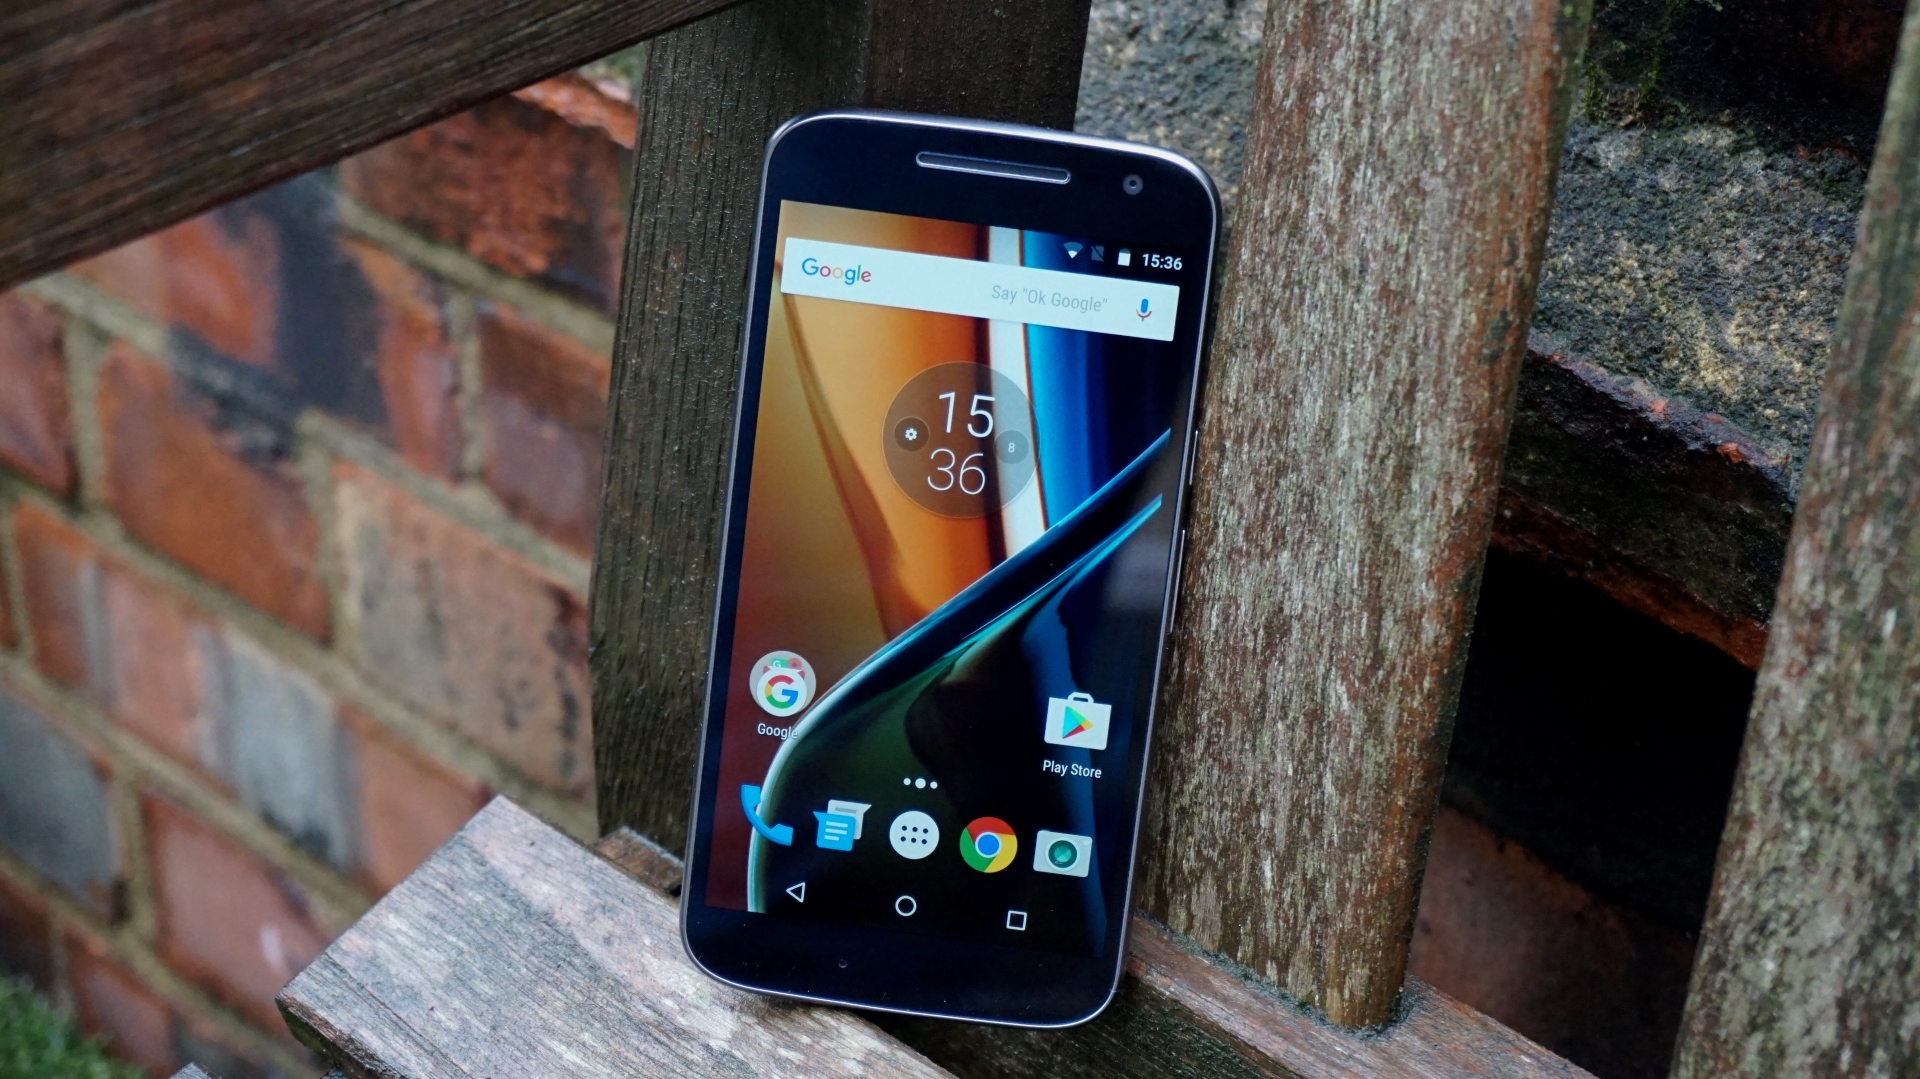 how to play video in lock screen in moto g4